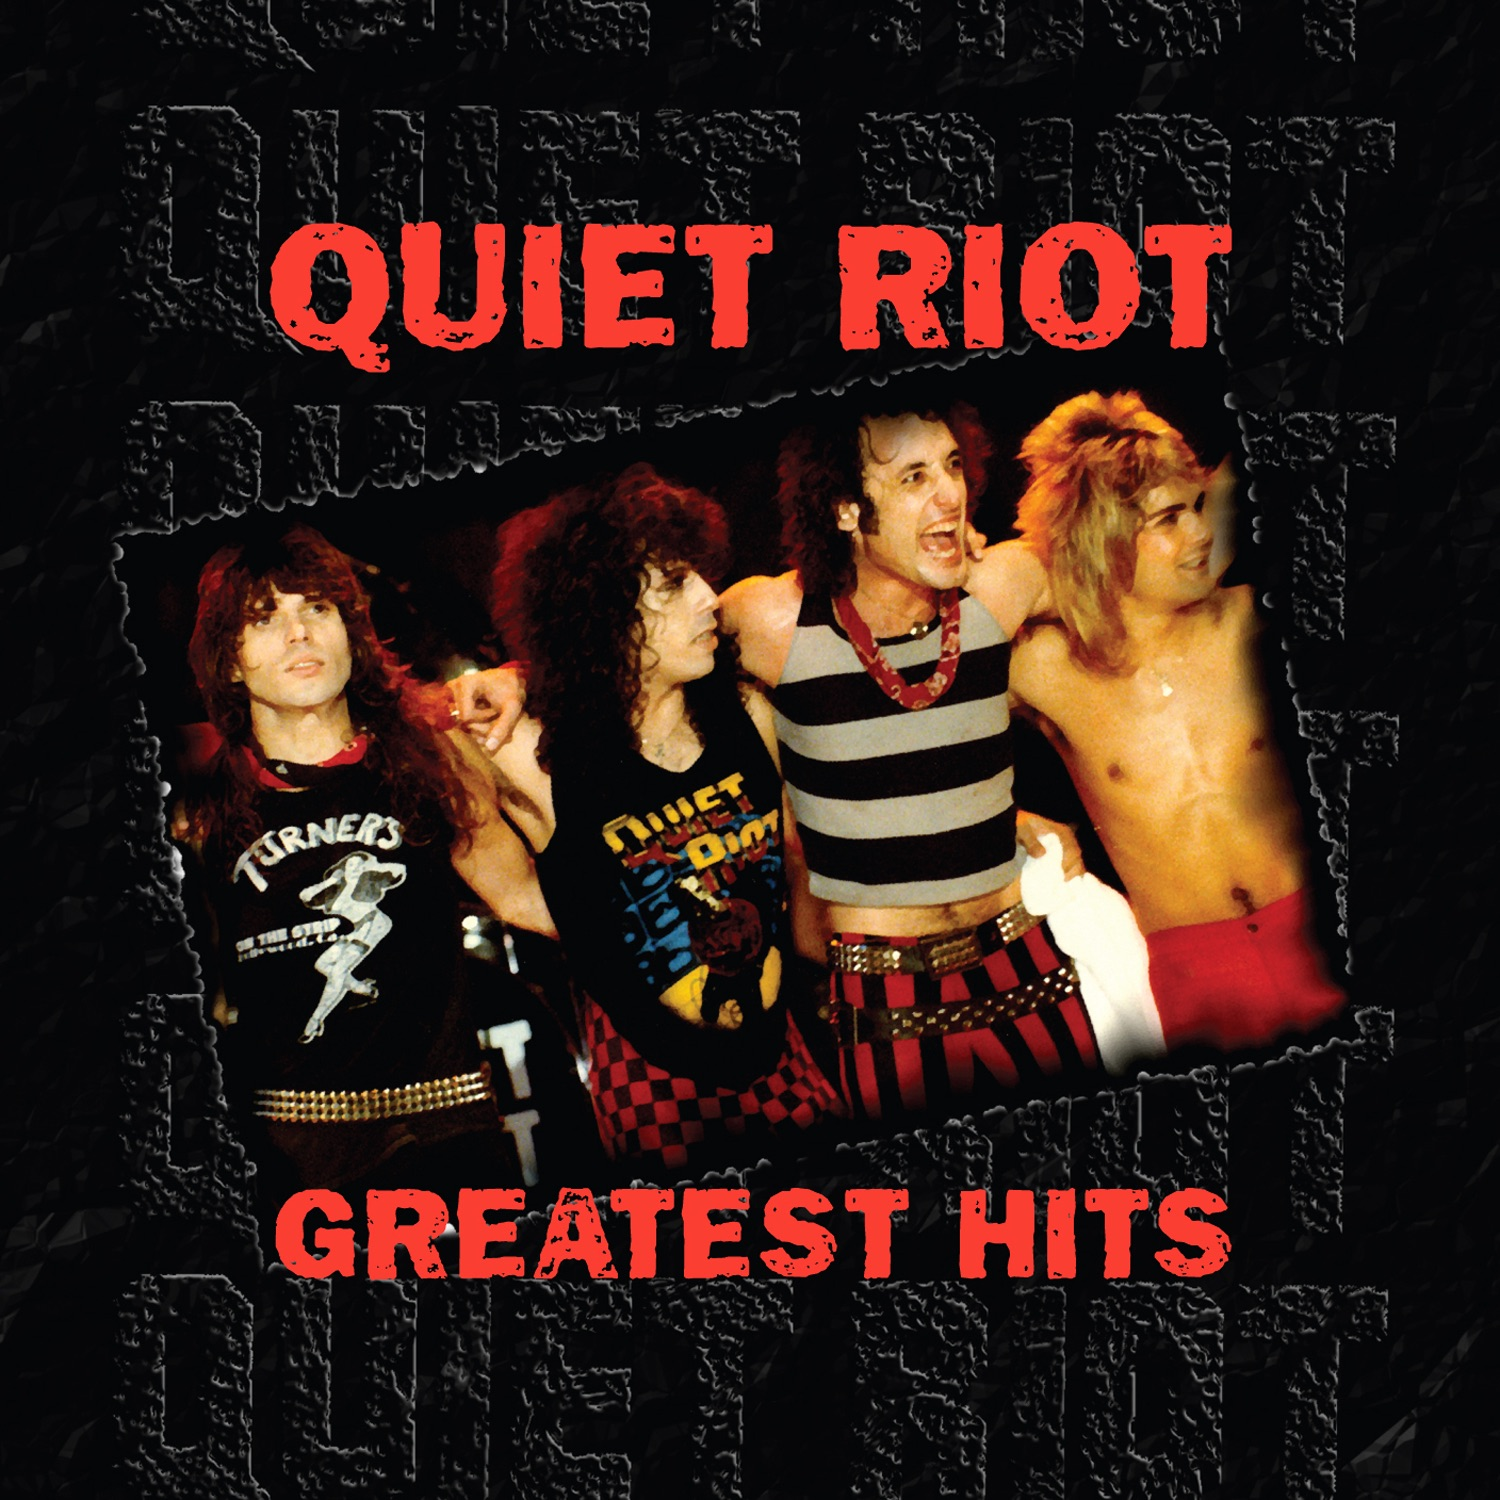 Quiet Riot: Greatest Hits by Quiet Riot on iTunes